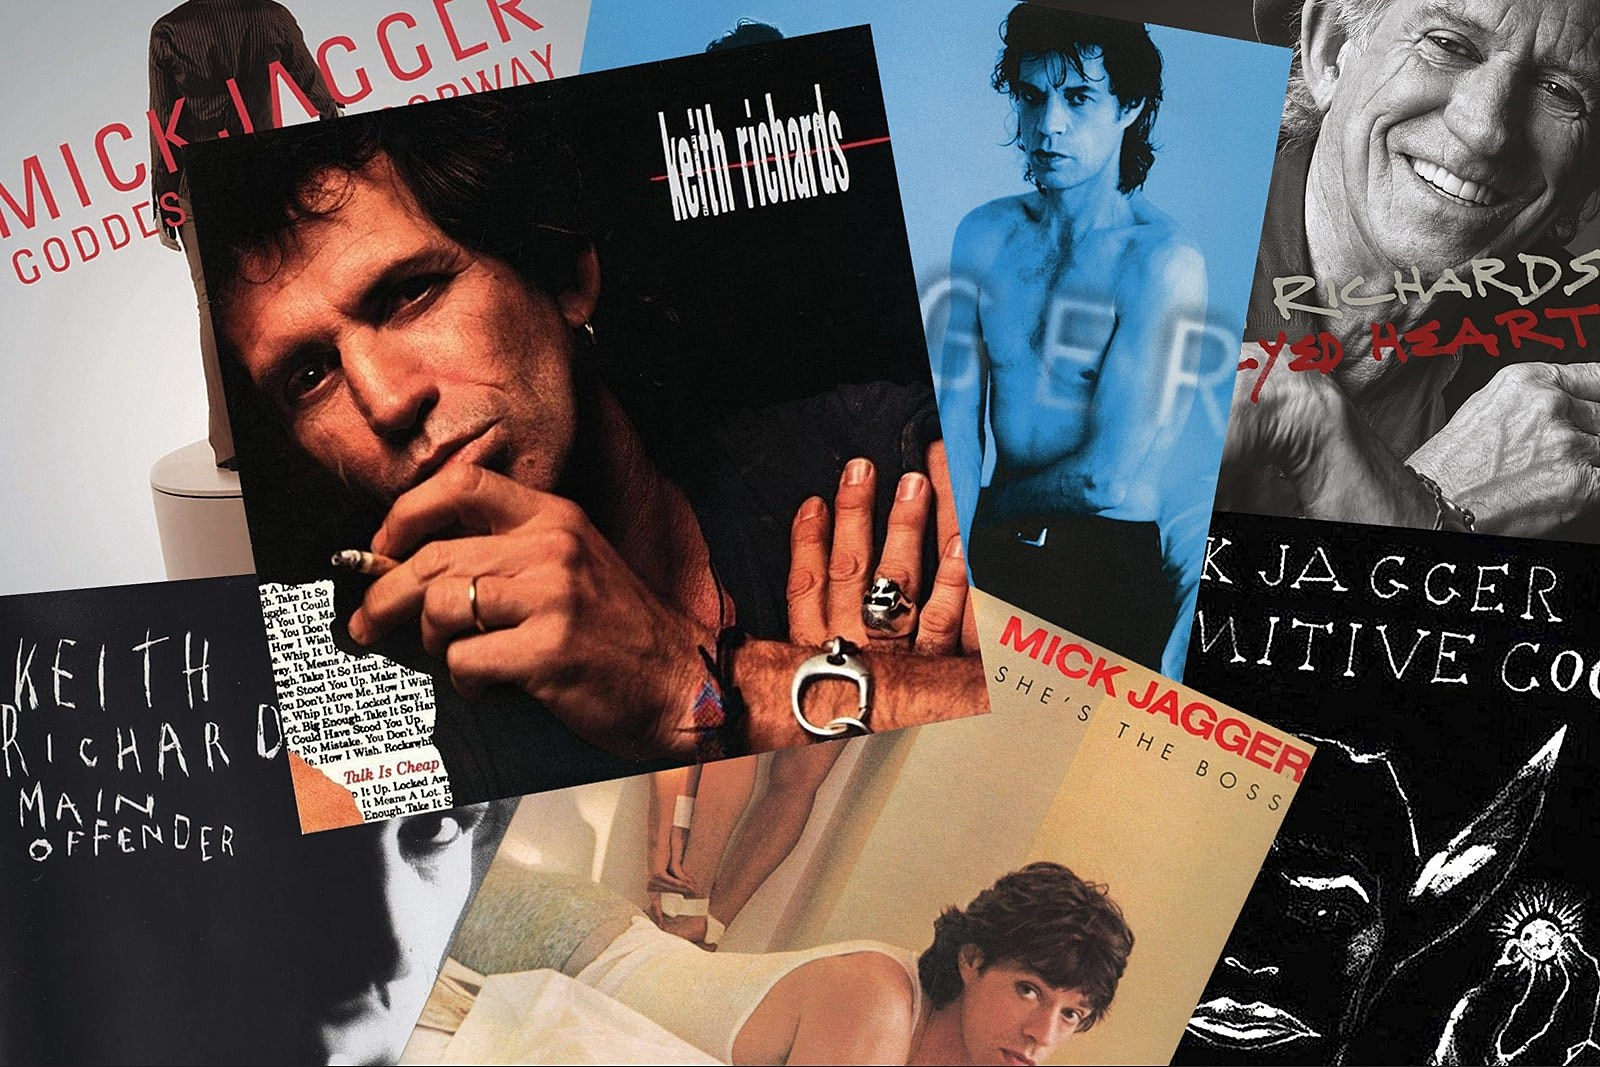 Most Underrated Song on Each LP by Mick Jagger and Keith Richards